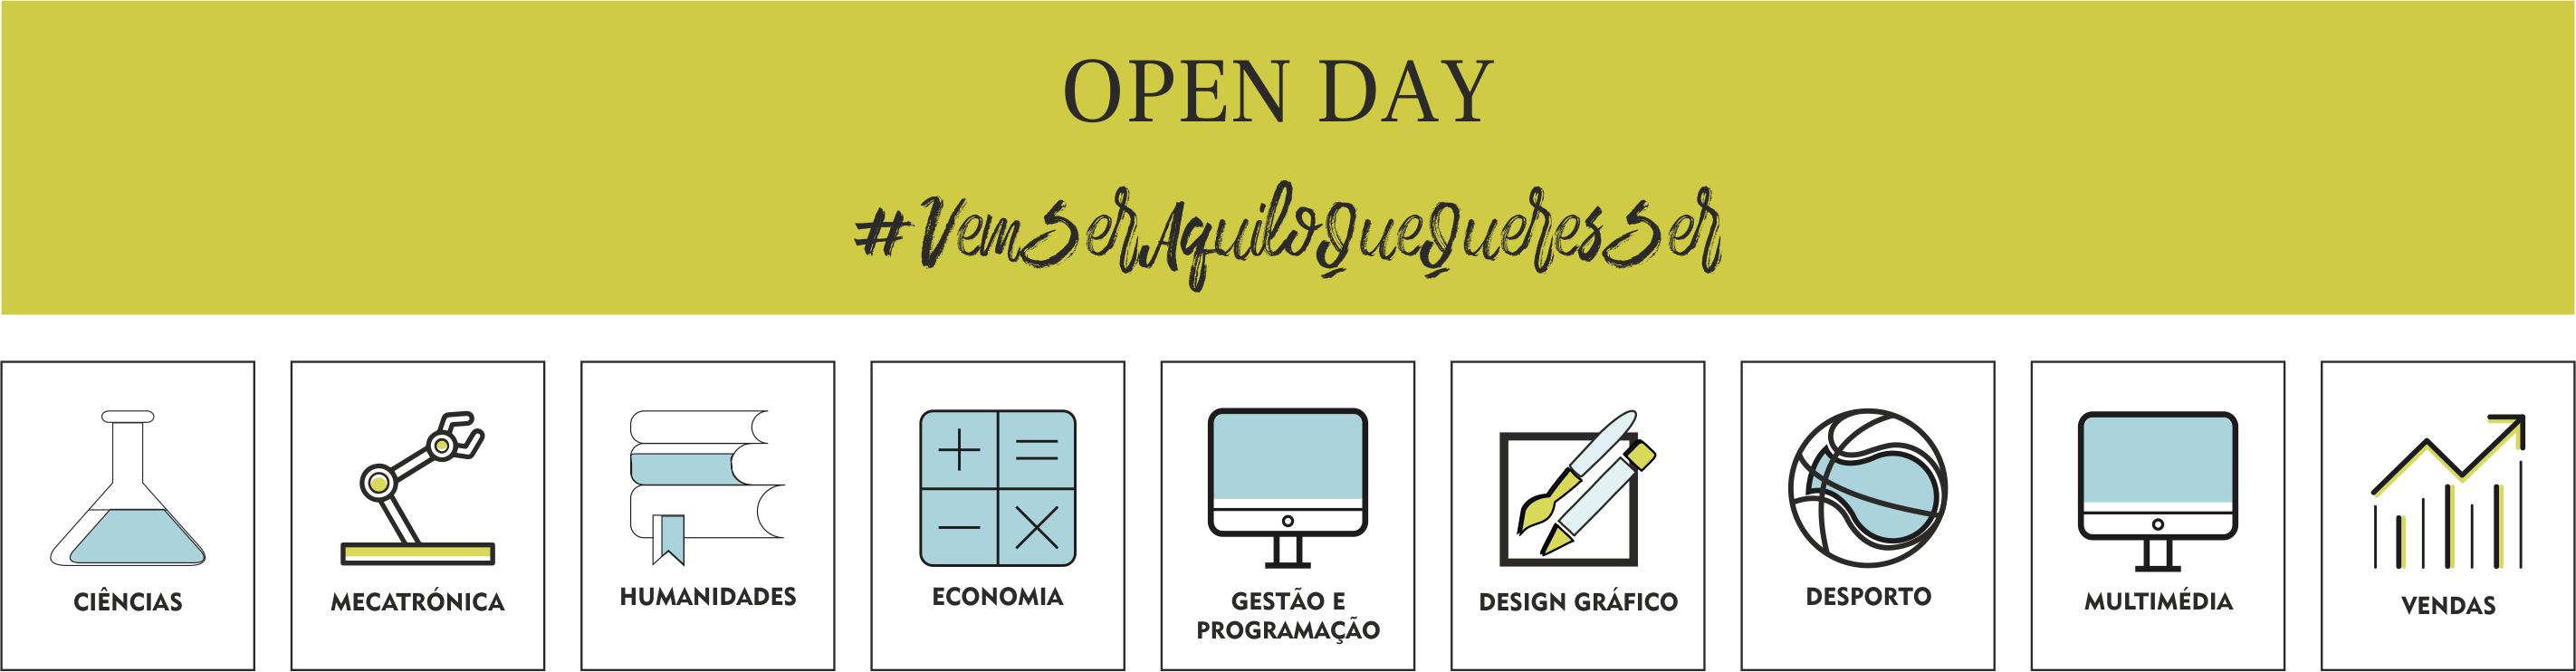 LOGOS_OPEN_DAY_2.png